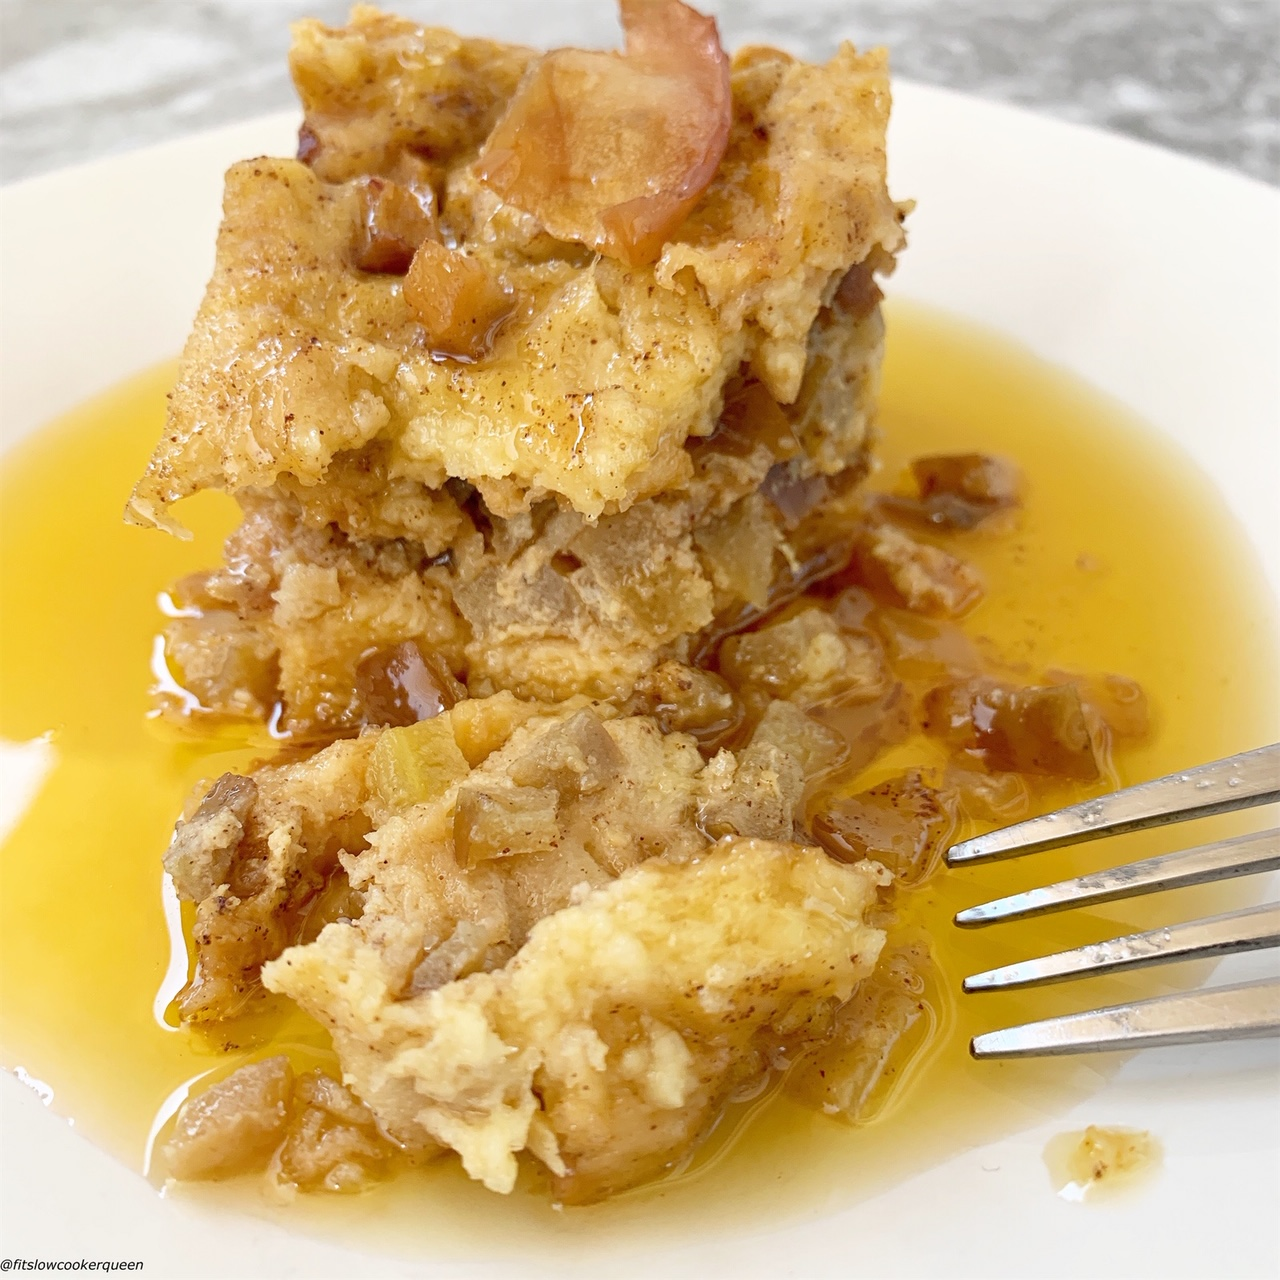 plate pic of crumbled Slow Cooker Apples & Honey Challah Bread Pudding